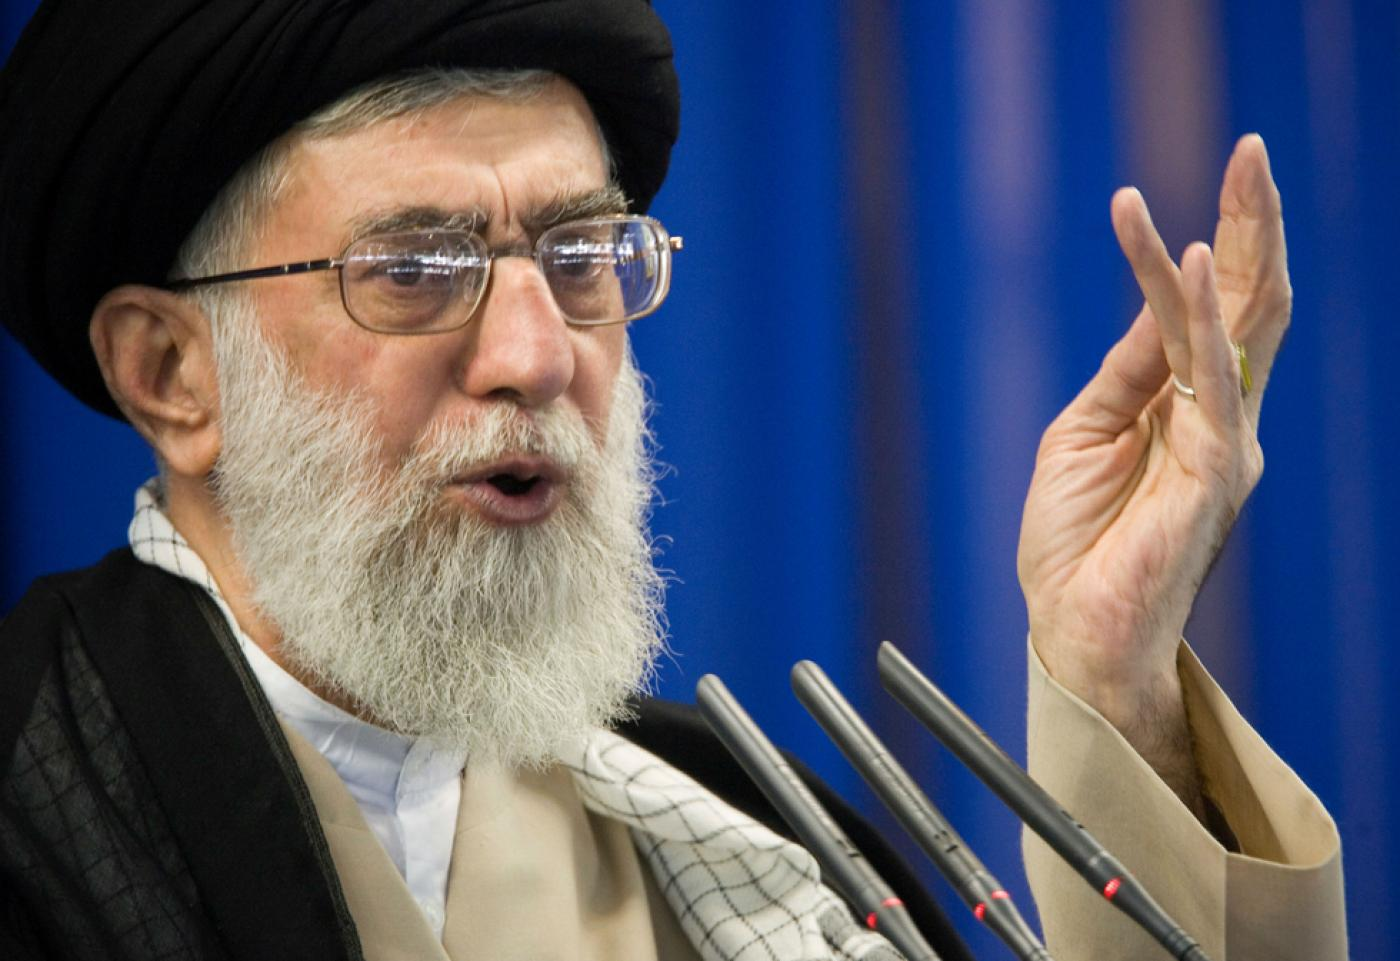 Iran's Khamenei backs call to block Gulf oil exports if own